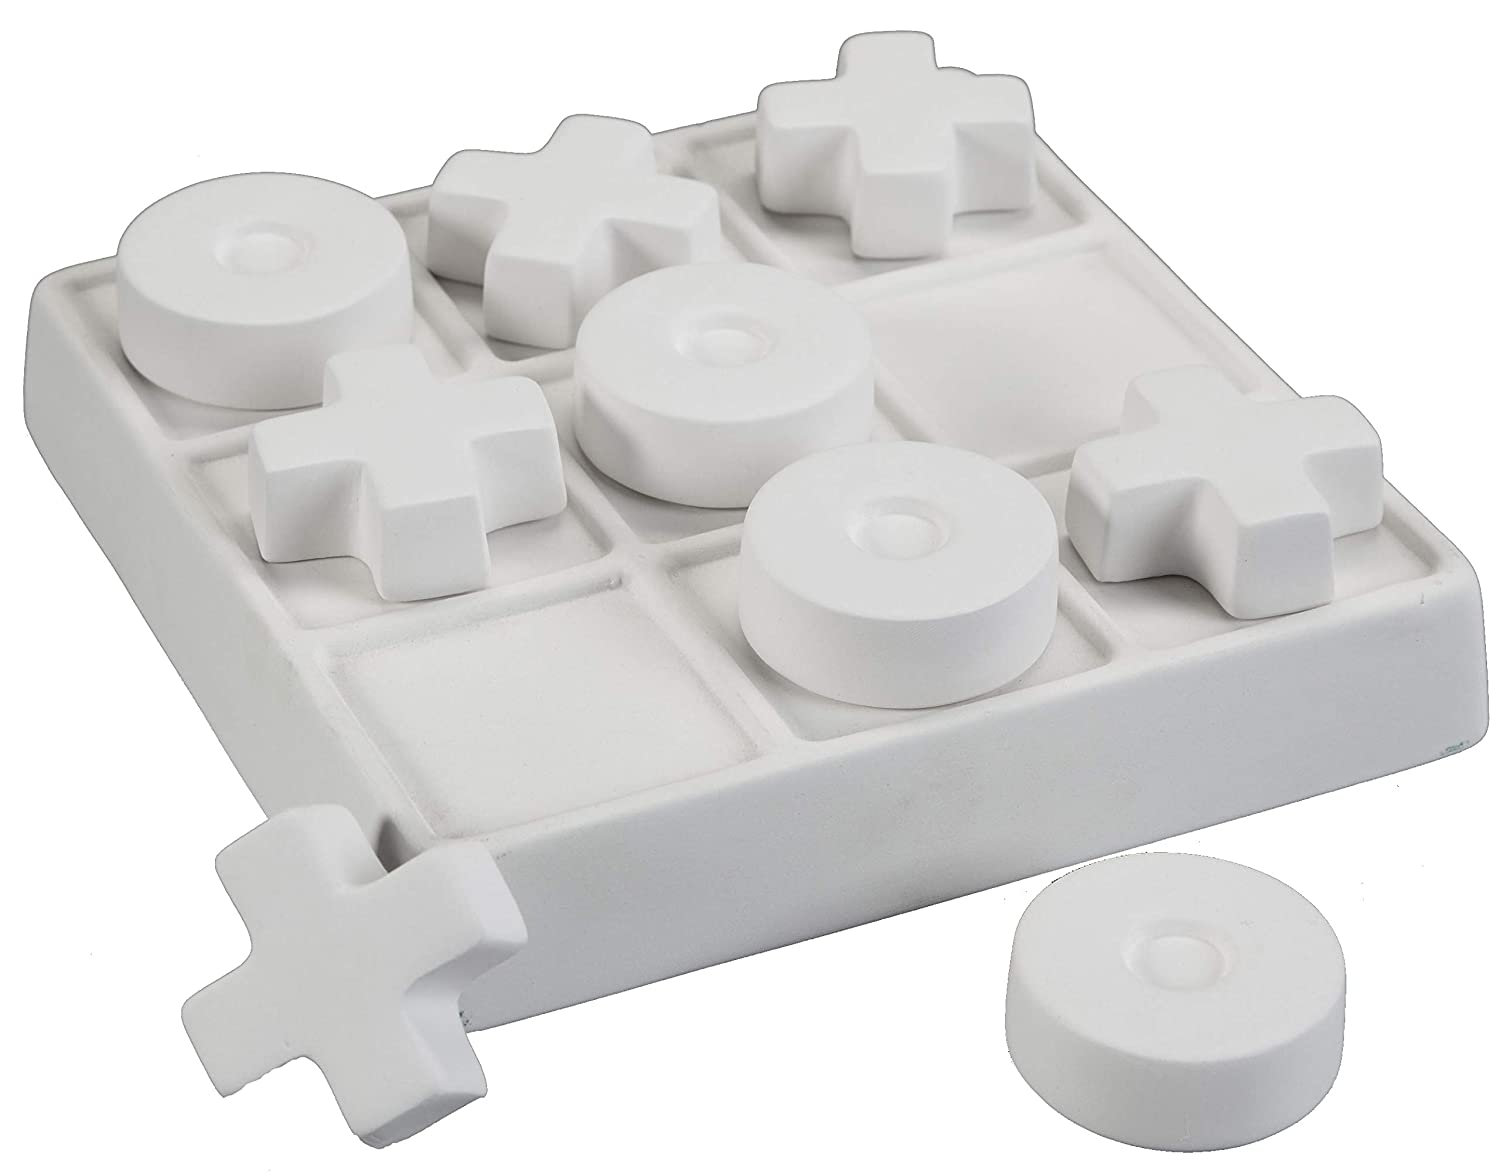 Creative Hobbies Small Tic Tac Toe Set, Case of 6, Unfinished Ceramic Bisque, with How to Paint Your Own Pottery Booklet